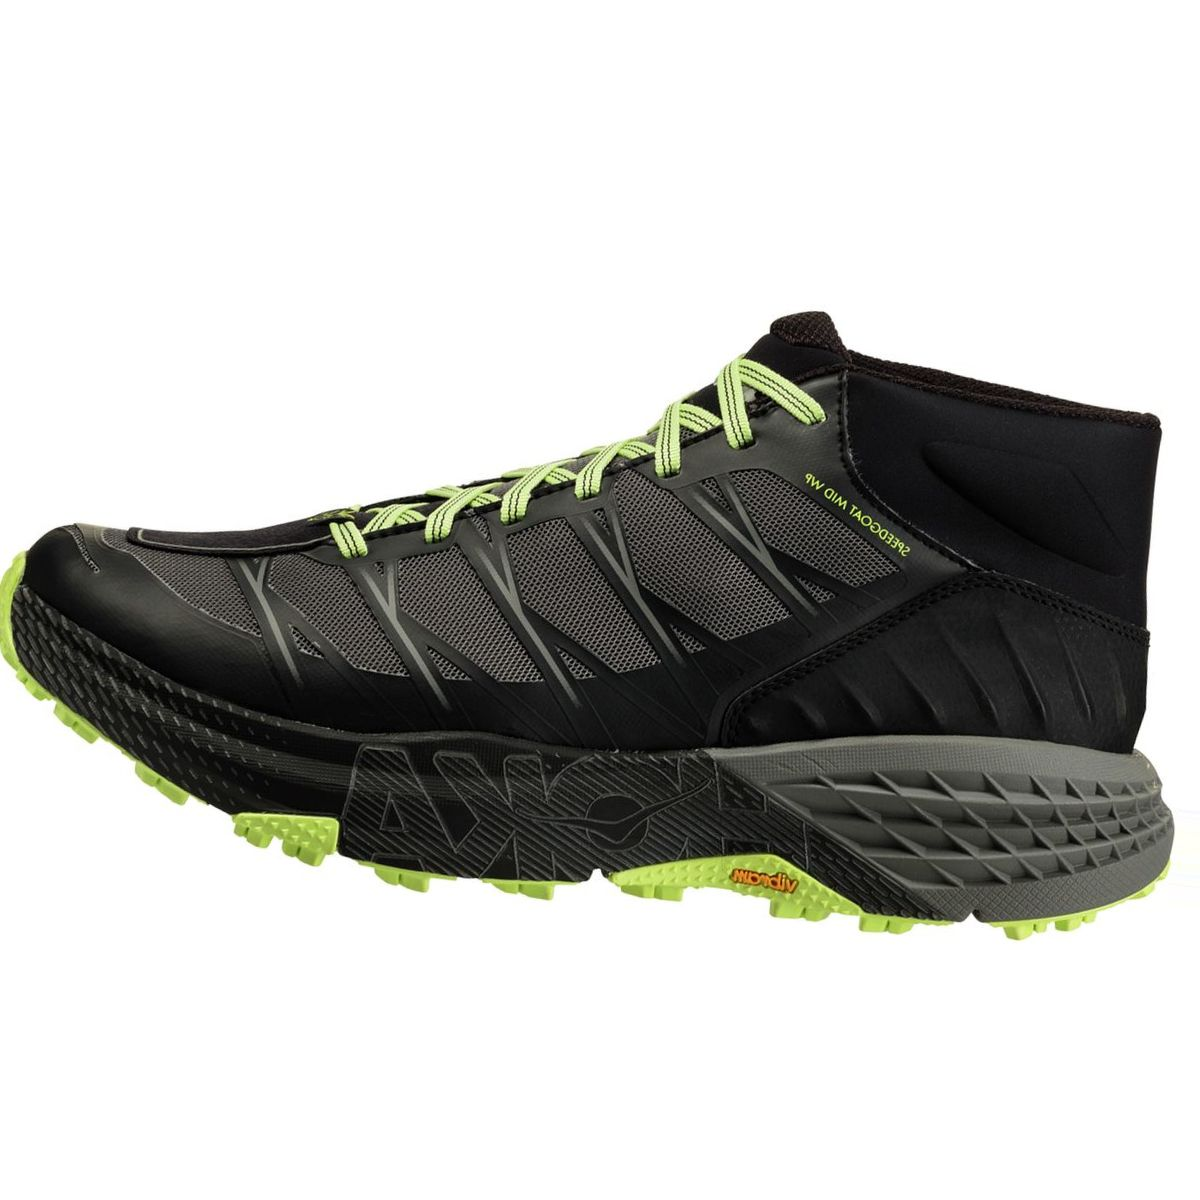 HOKA ONE ONE Speedgoat Mid WP Trail Run Shoe - Men's